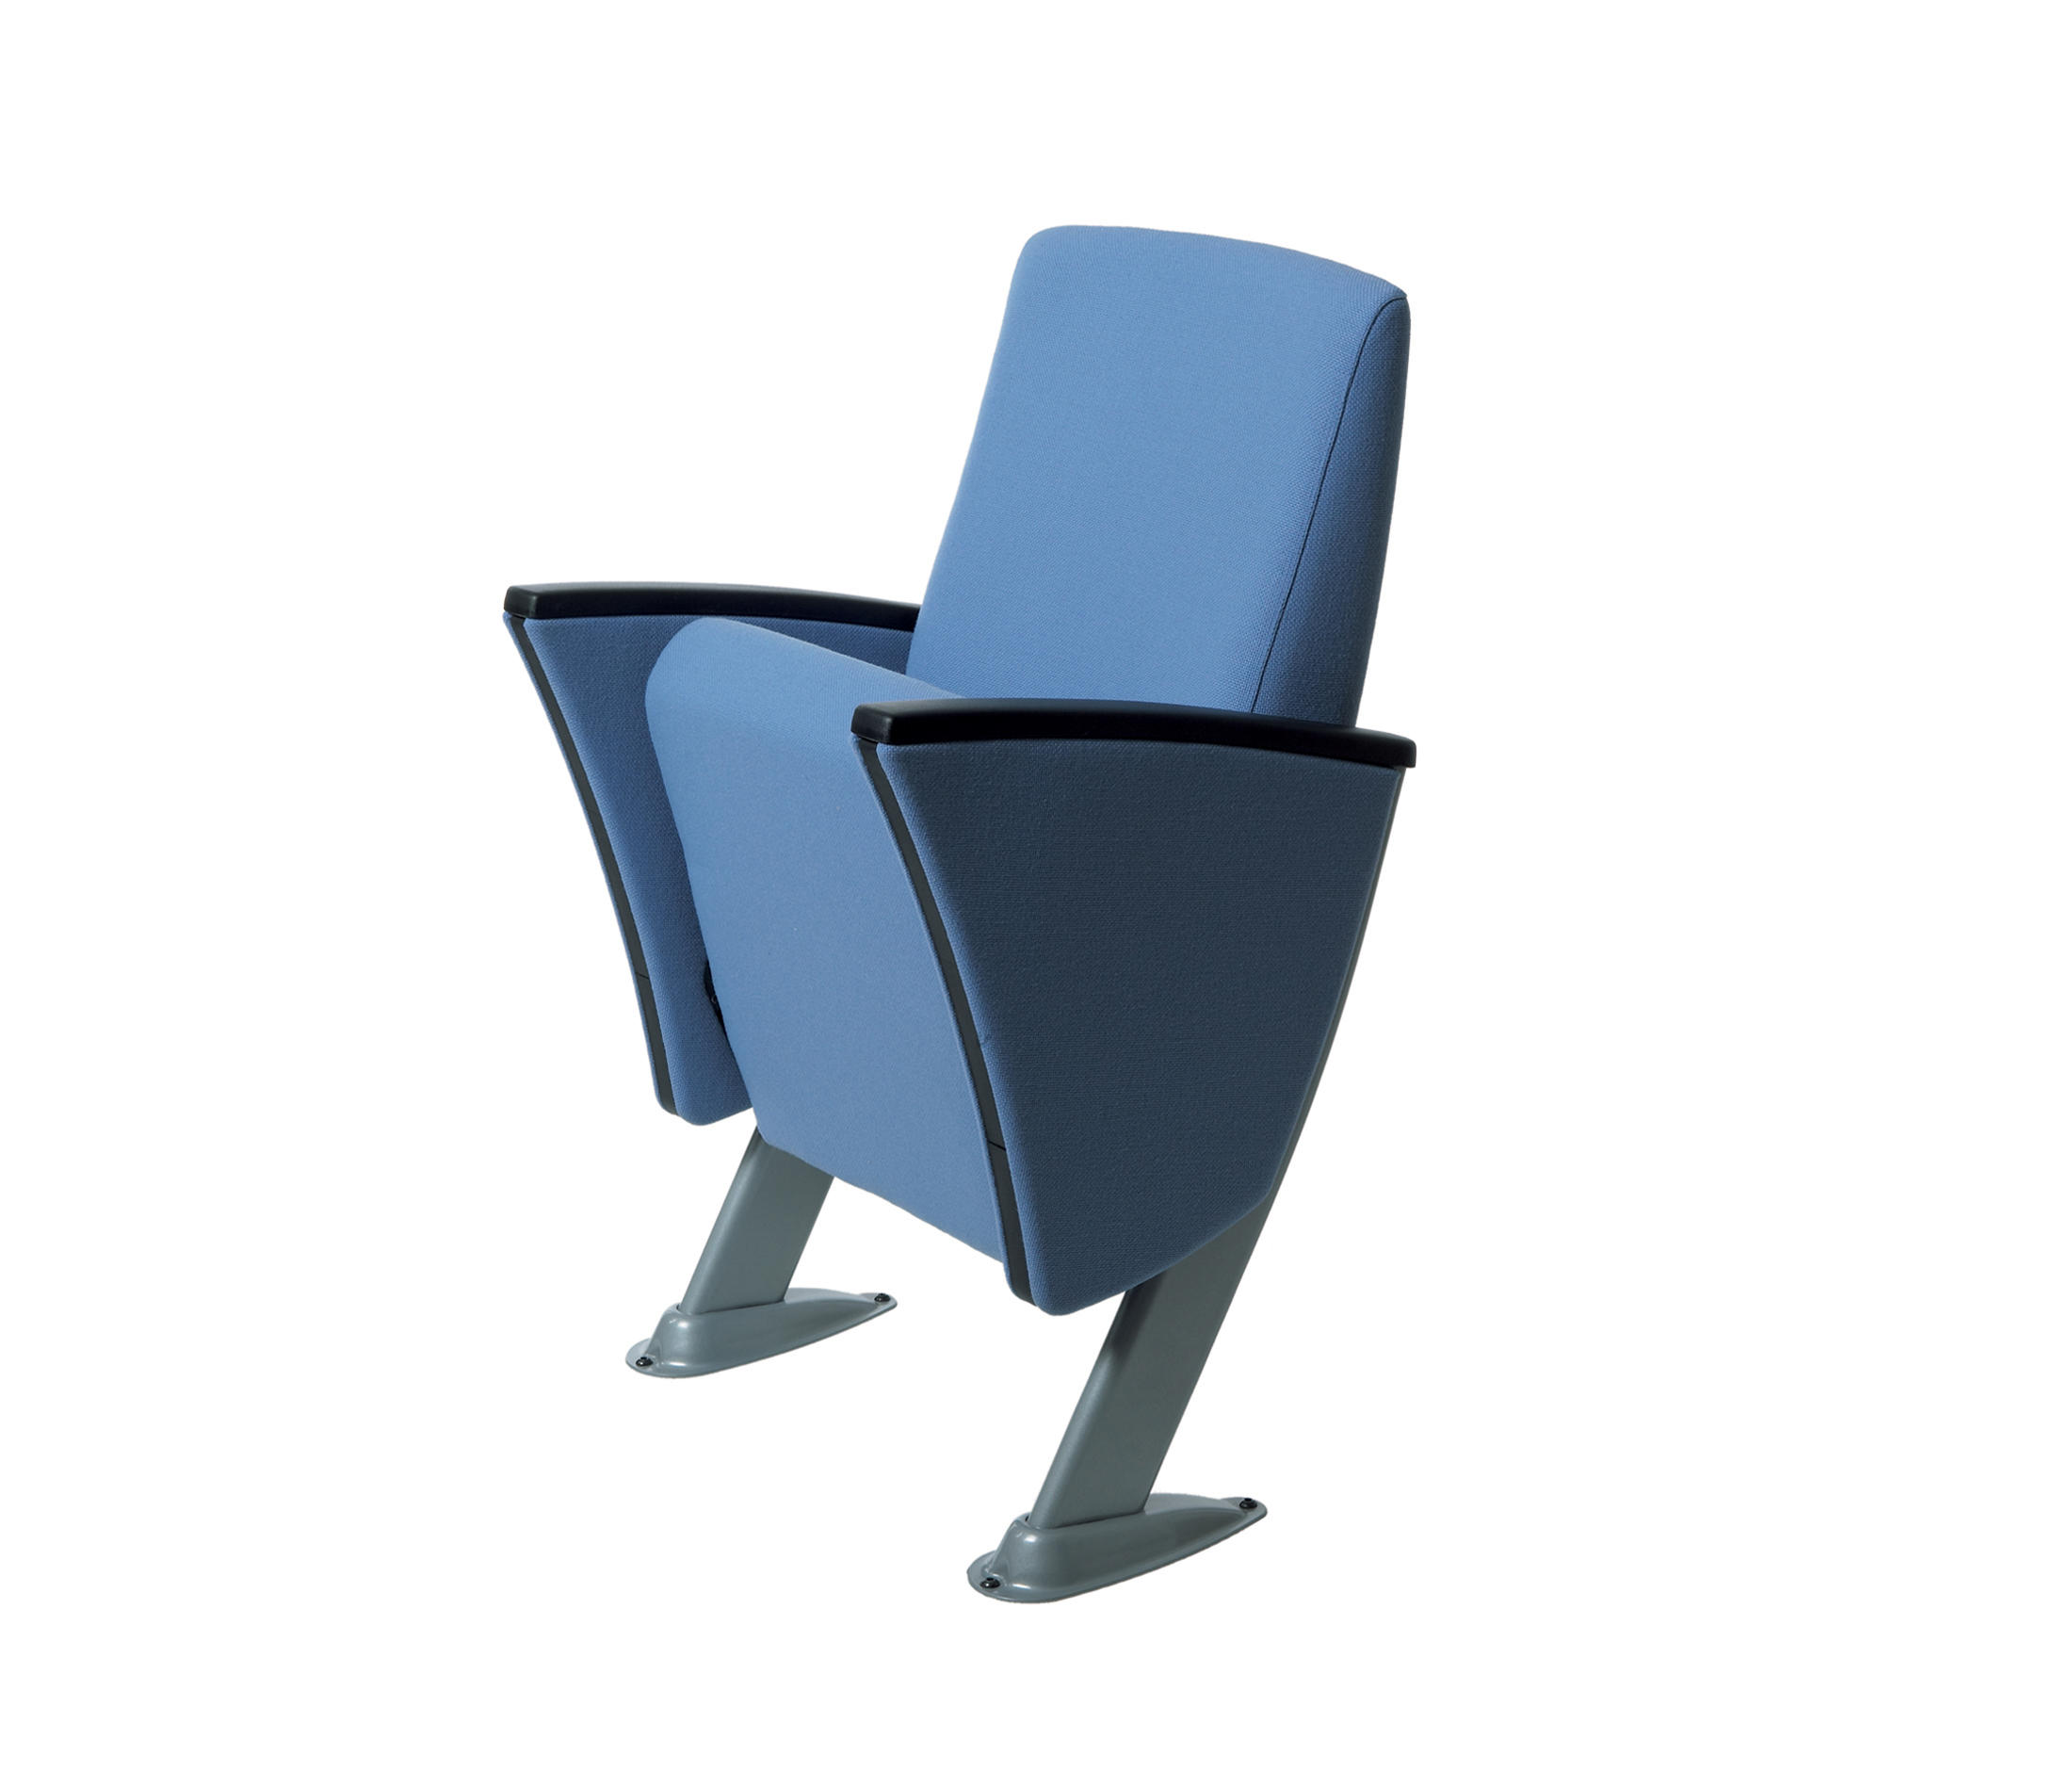 EIDOS - Auditorium seating from Ares Line   Architonic   eidos furniture